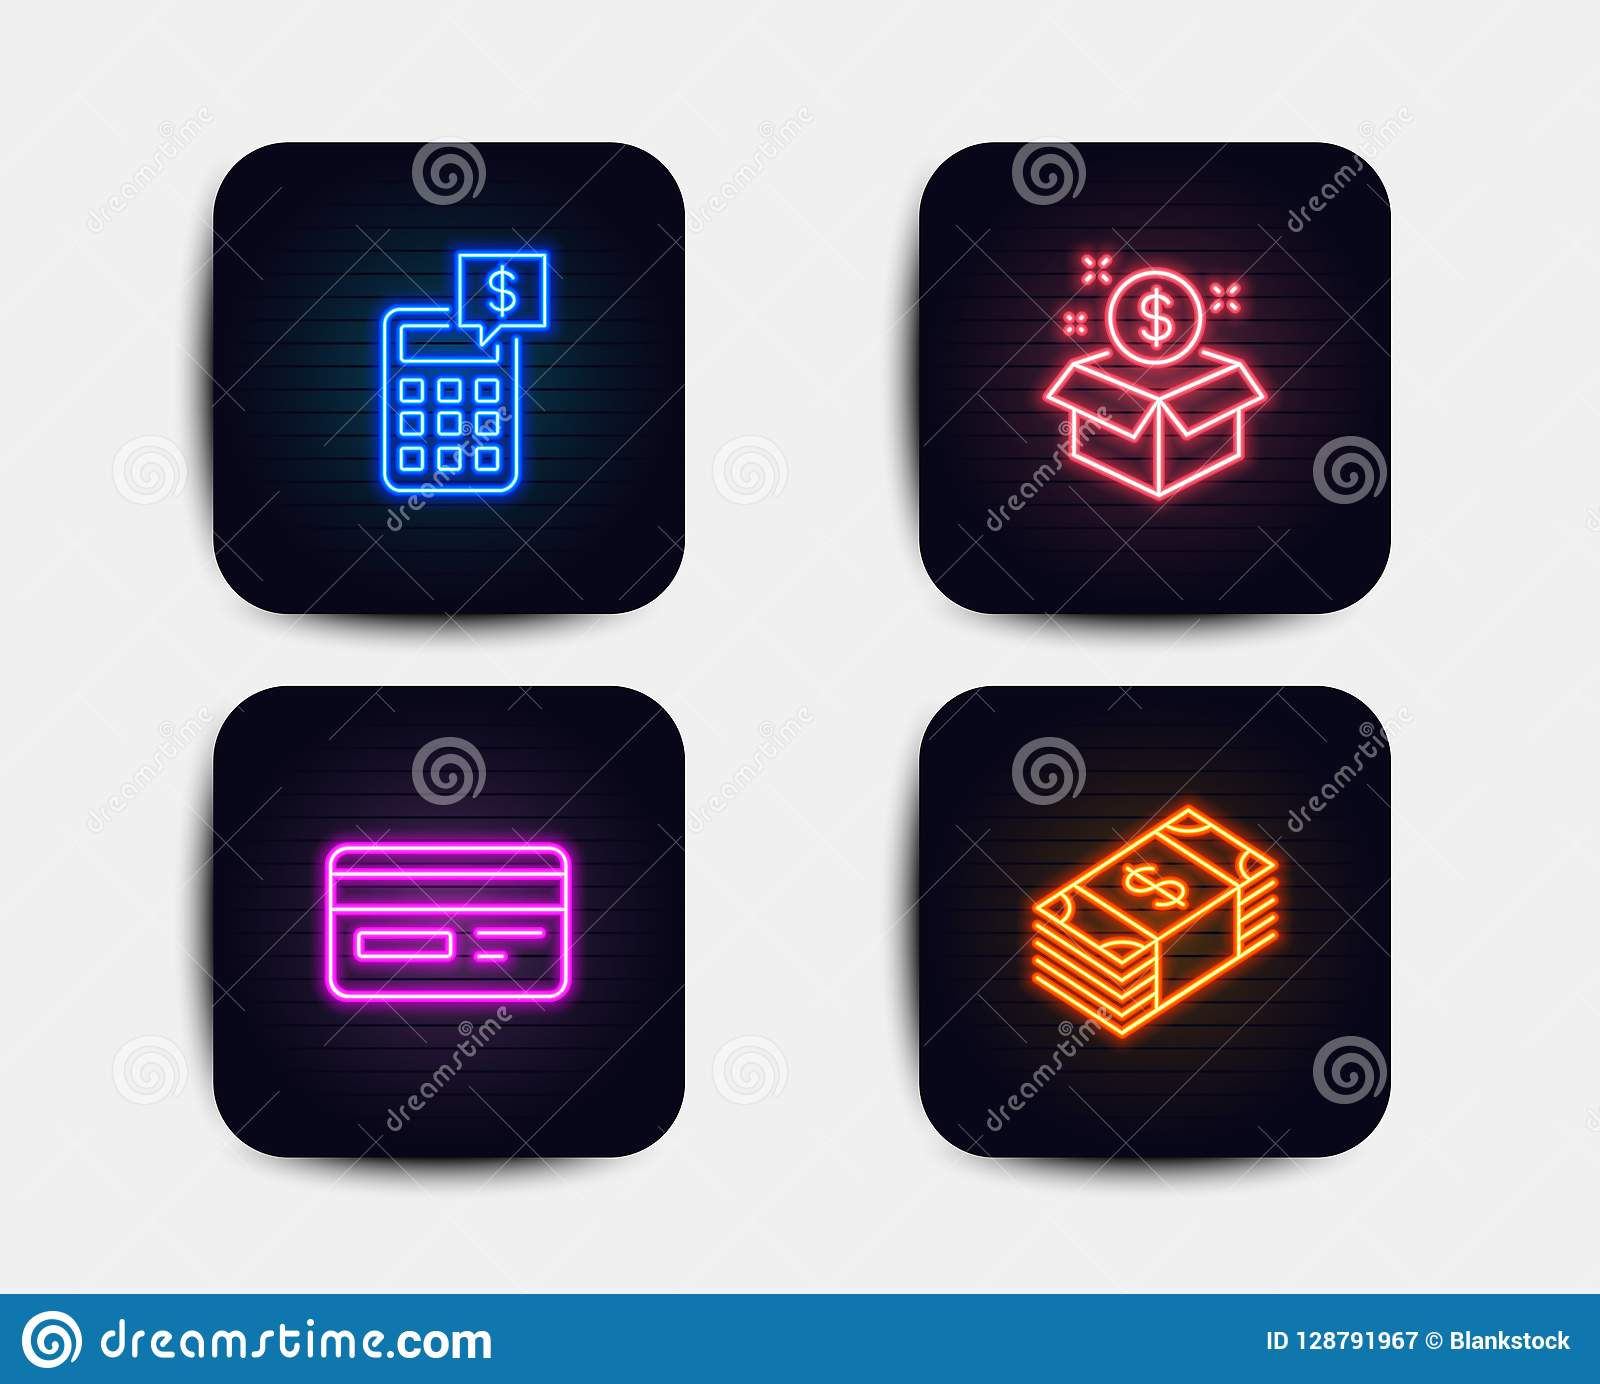 Post Package, Credit Card And Calculator Icons. Usd